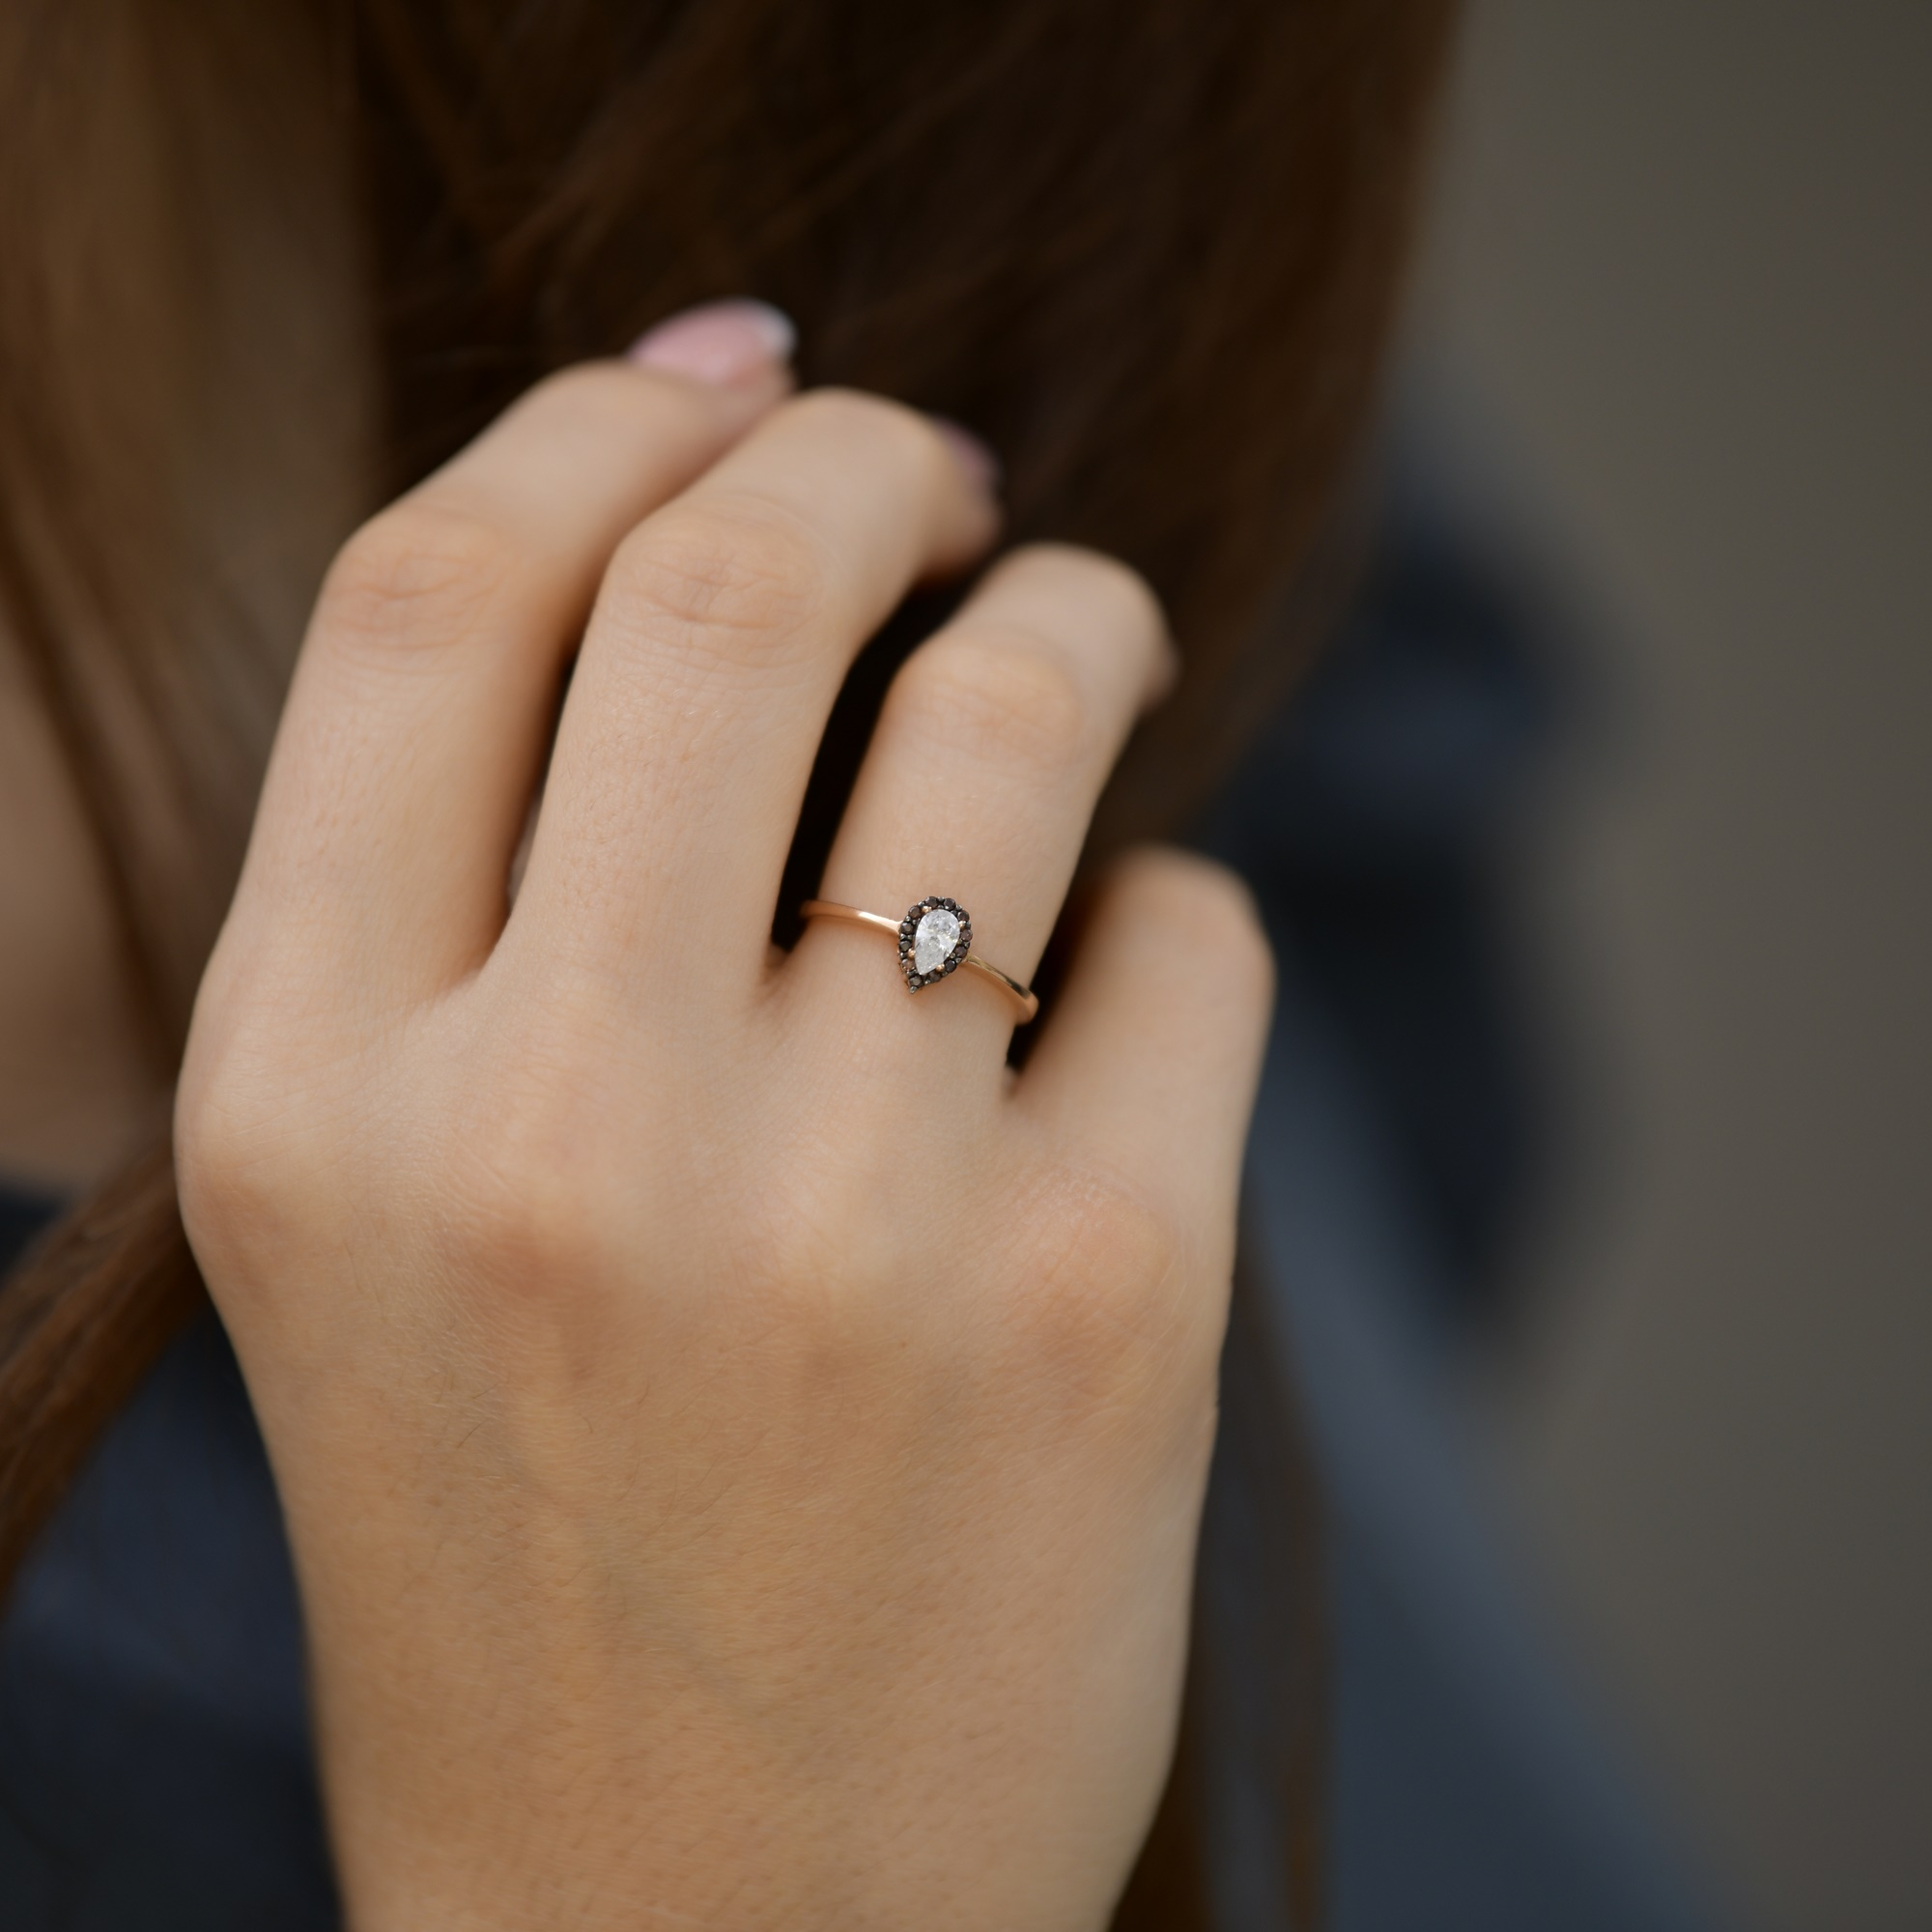 Your dreamy engagement ring